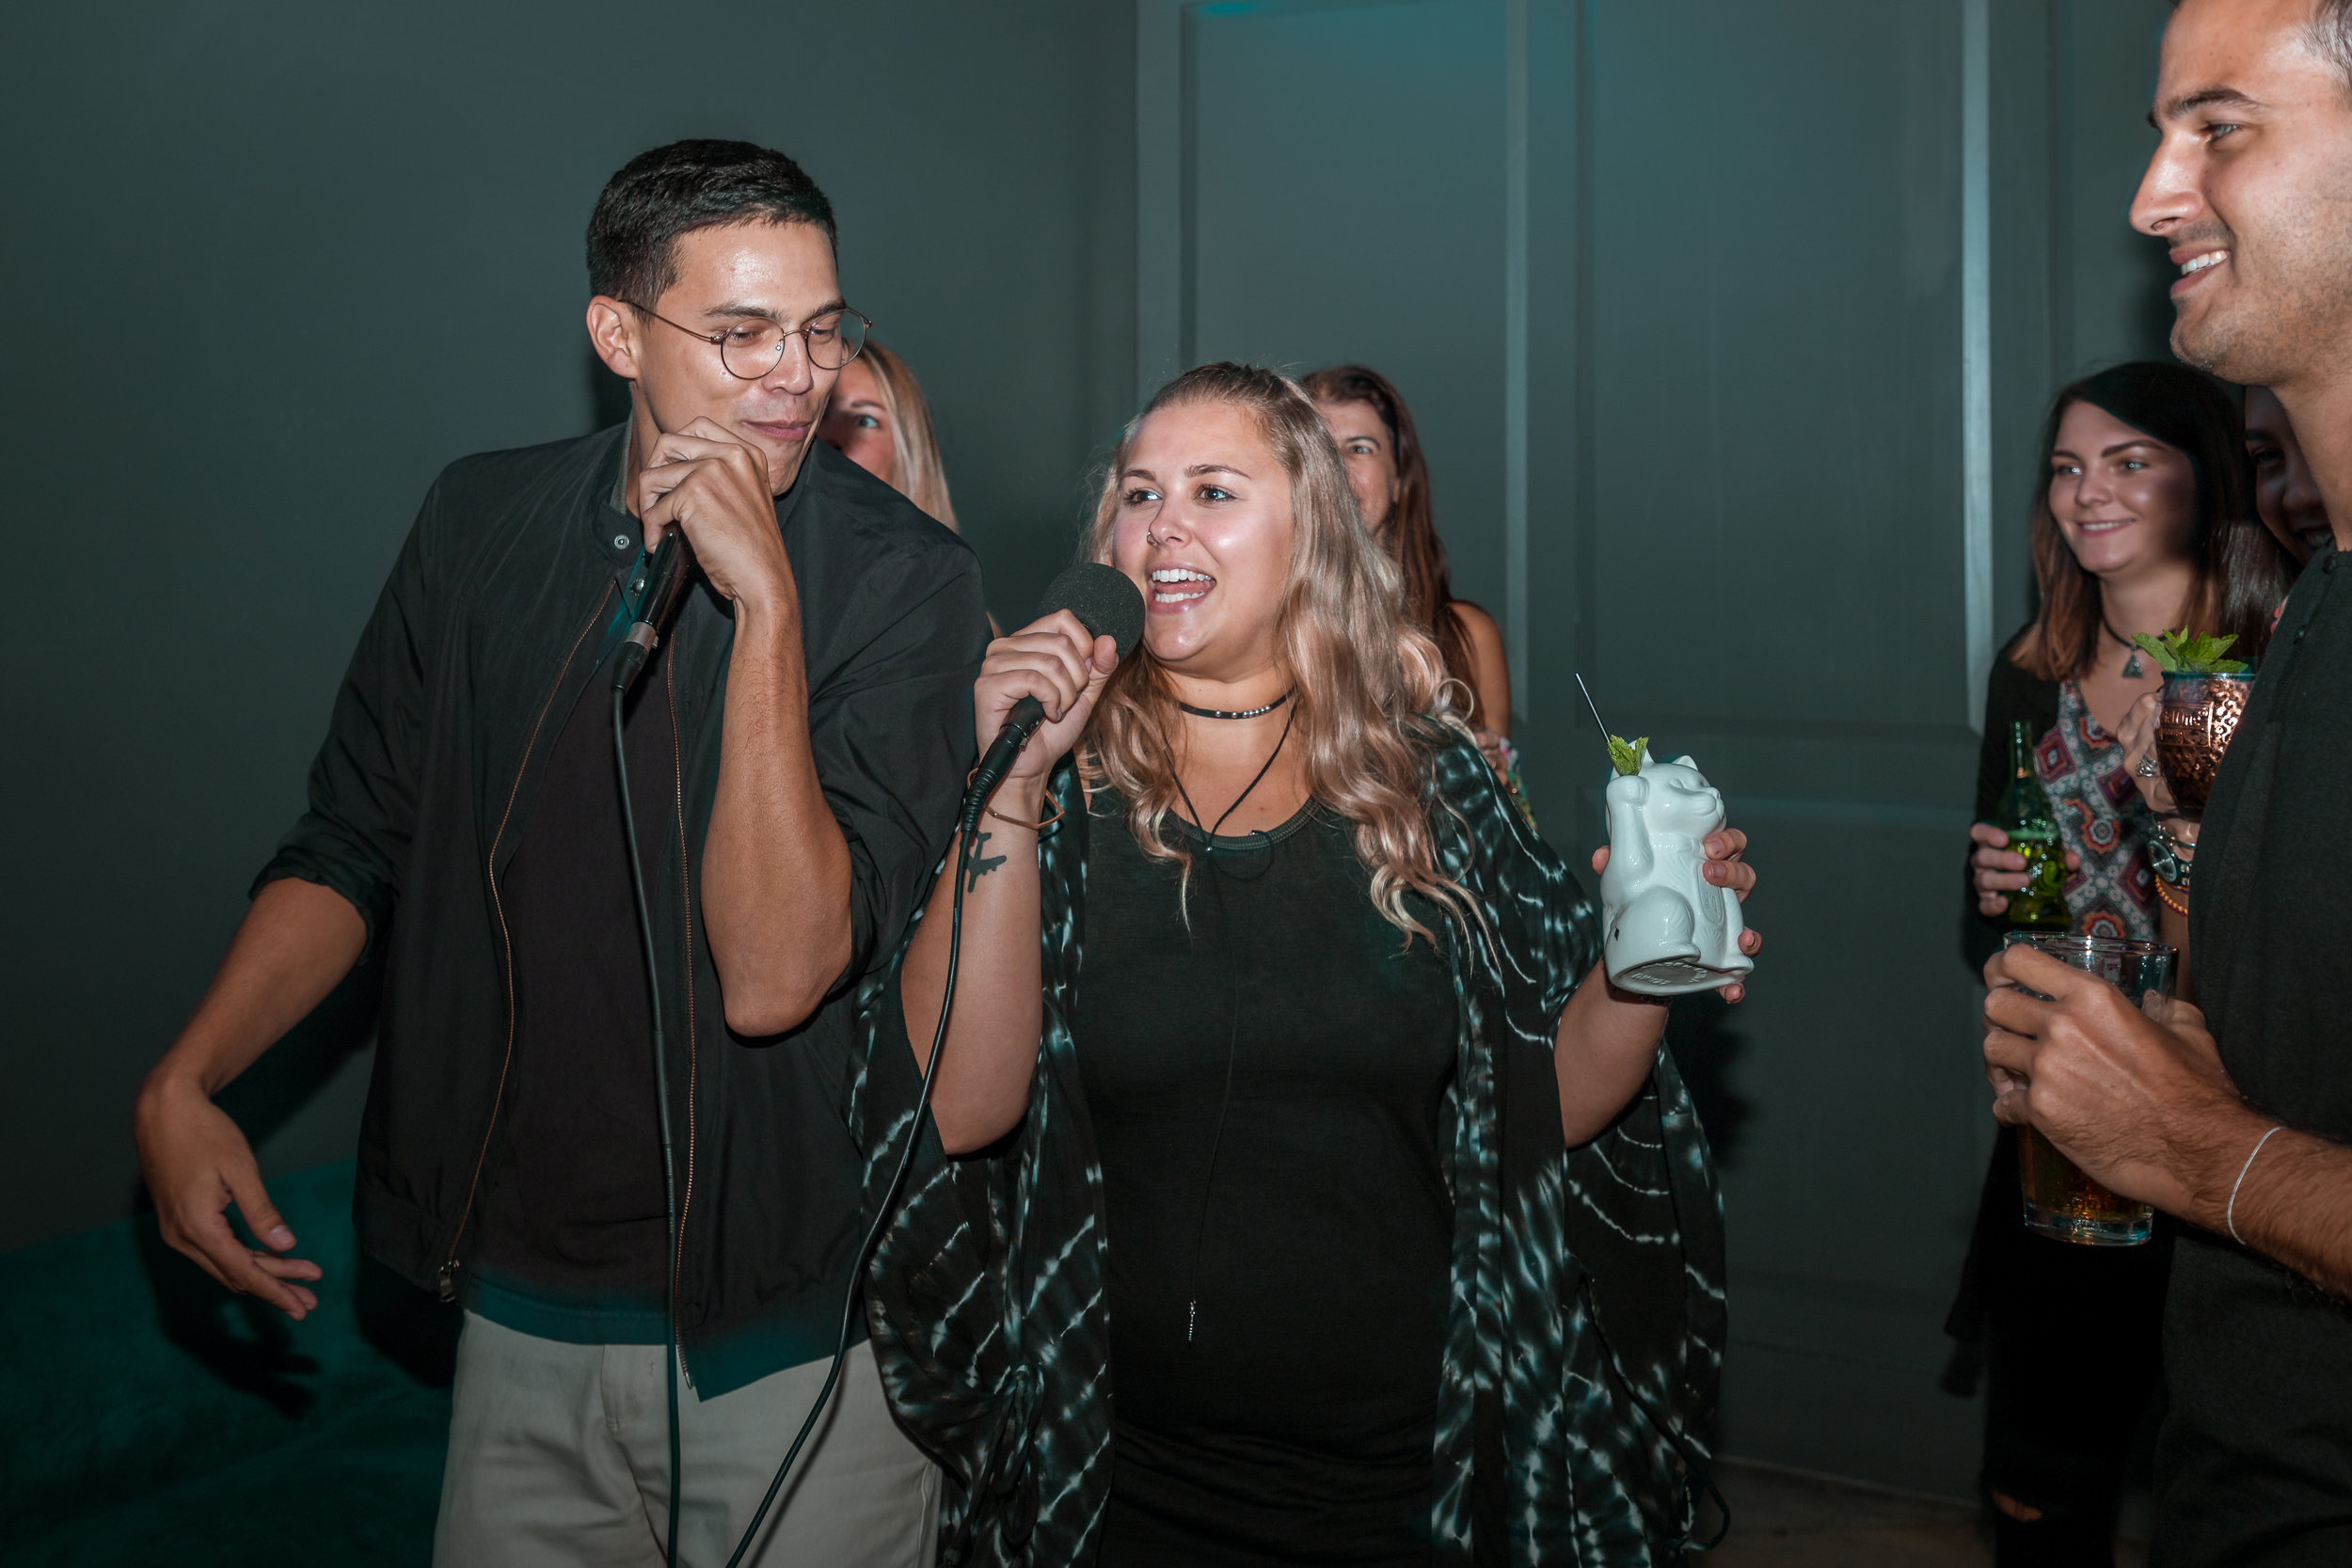 Karaoke Night at 1-800-Lucky - Grab your friends and come on over to 1-800-Lucky's karaoke room! You can sing along every day of the week, with songs available from a wide variety of musical genres.